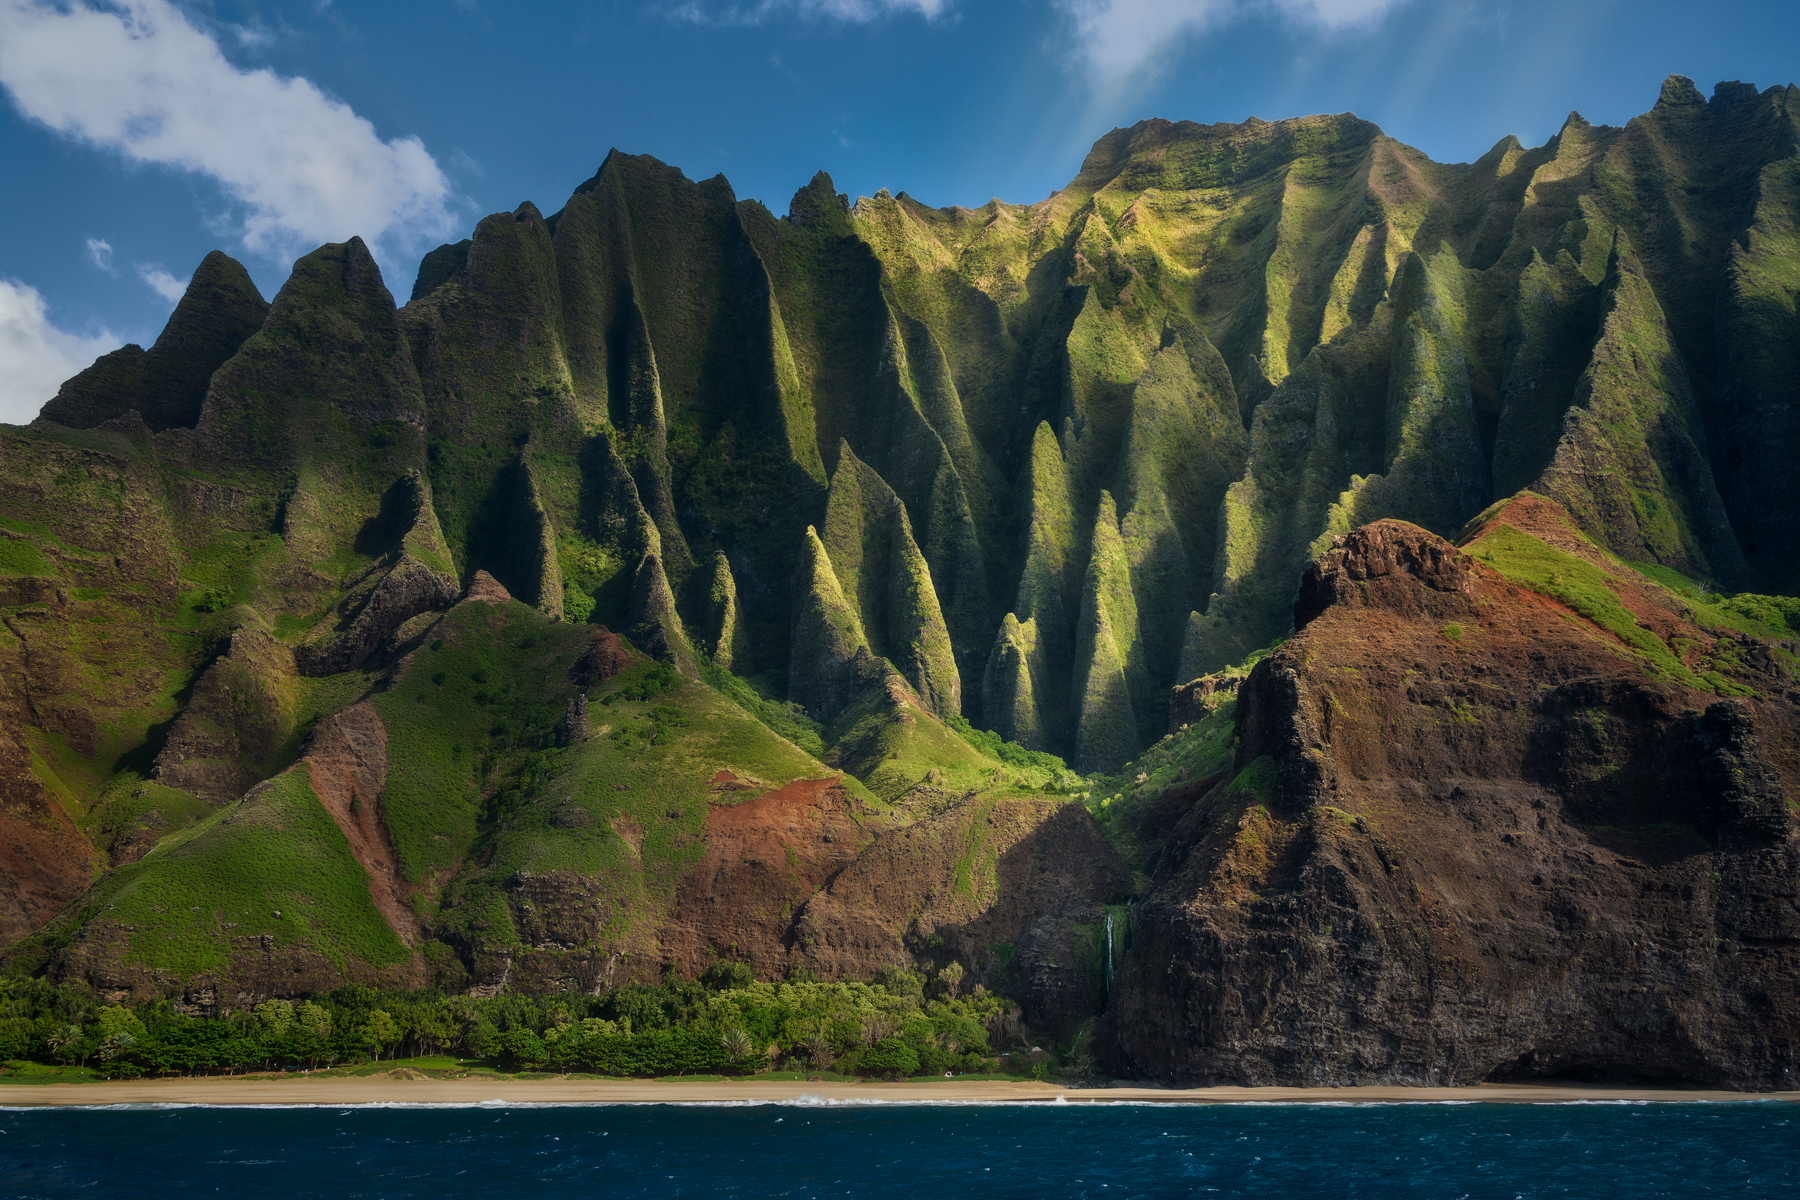 The sun filtering through storm clouds by the Napali coast light